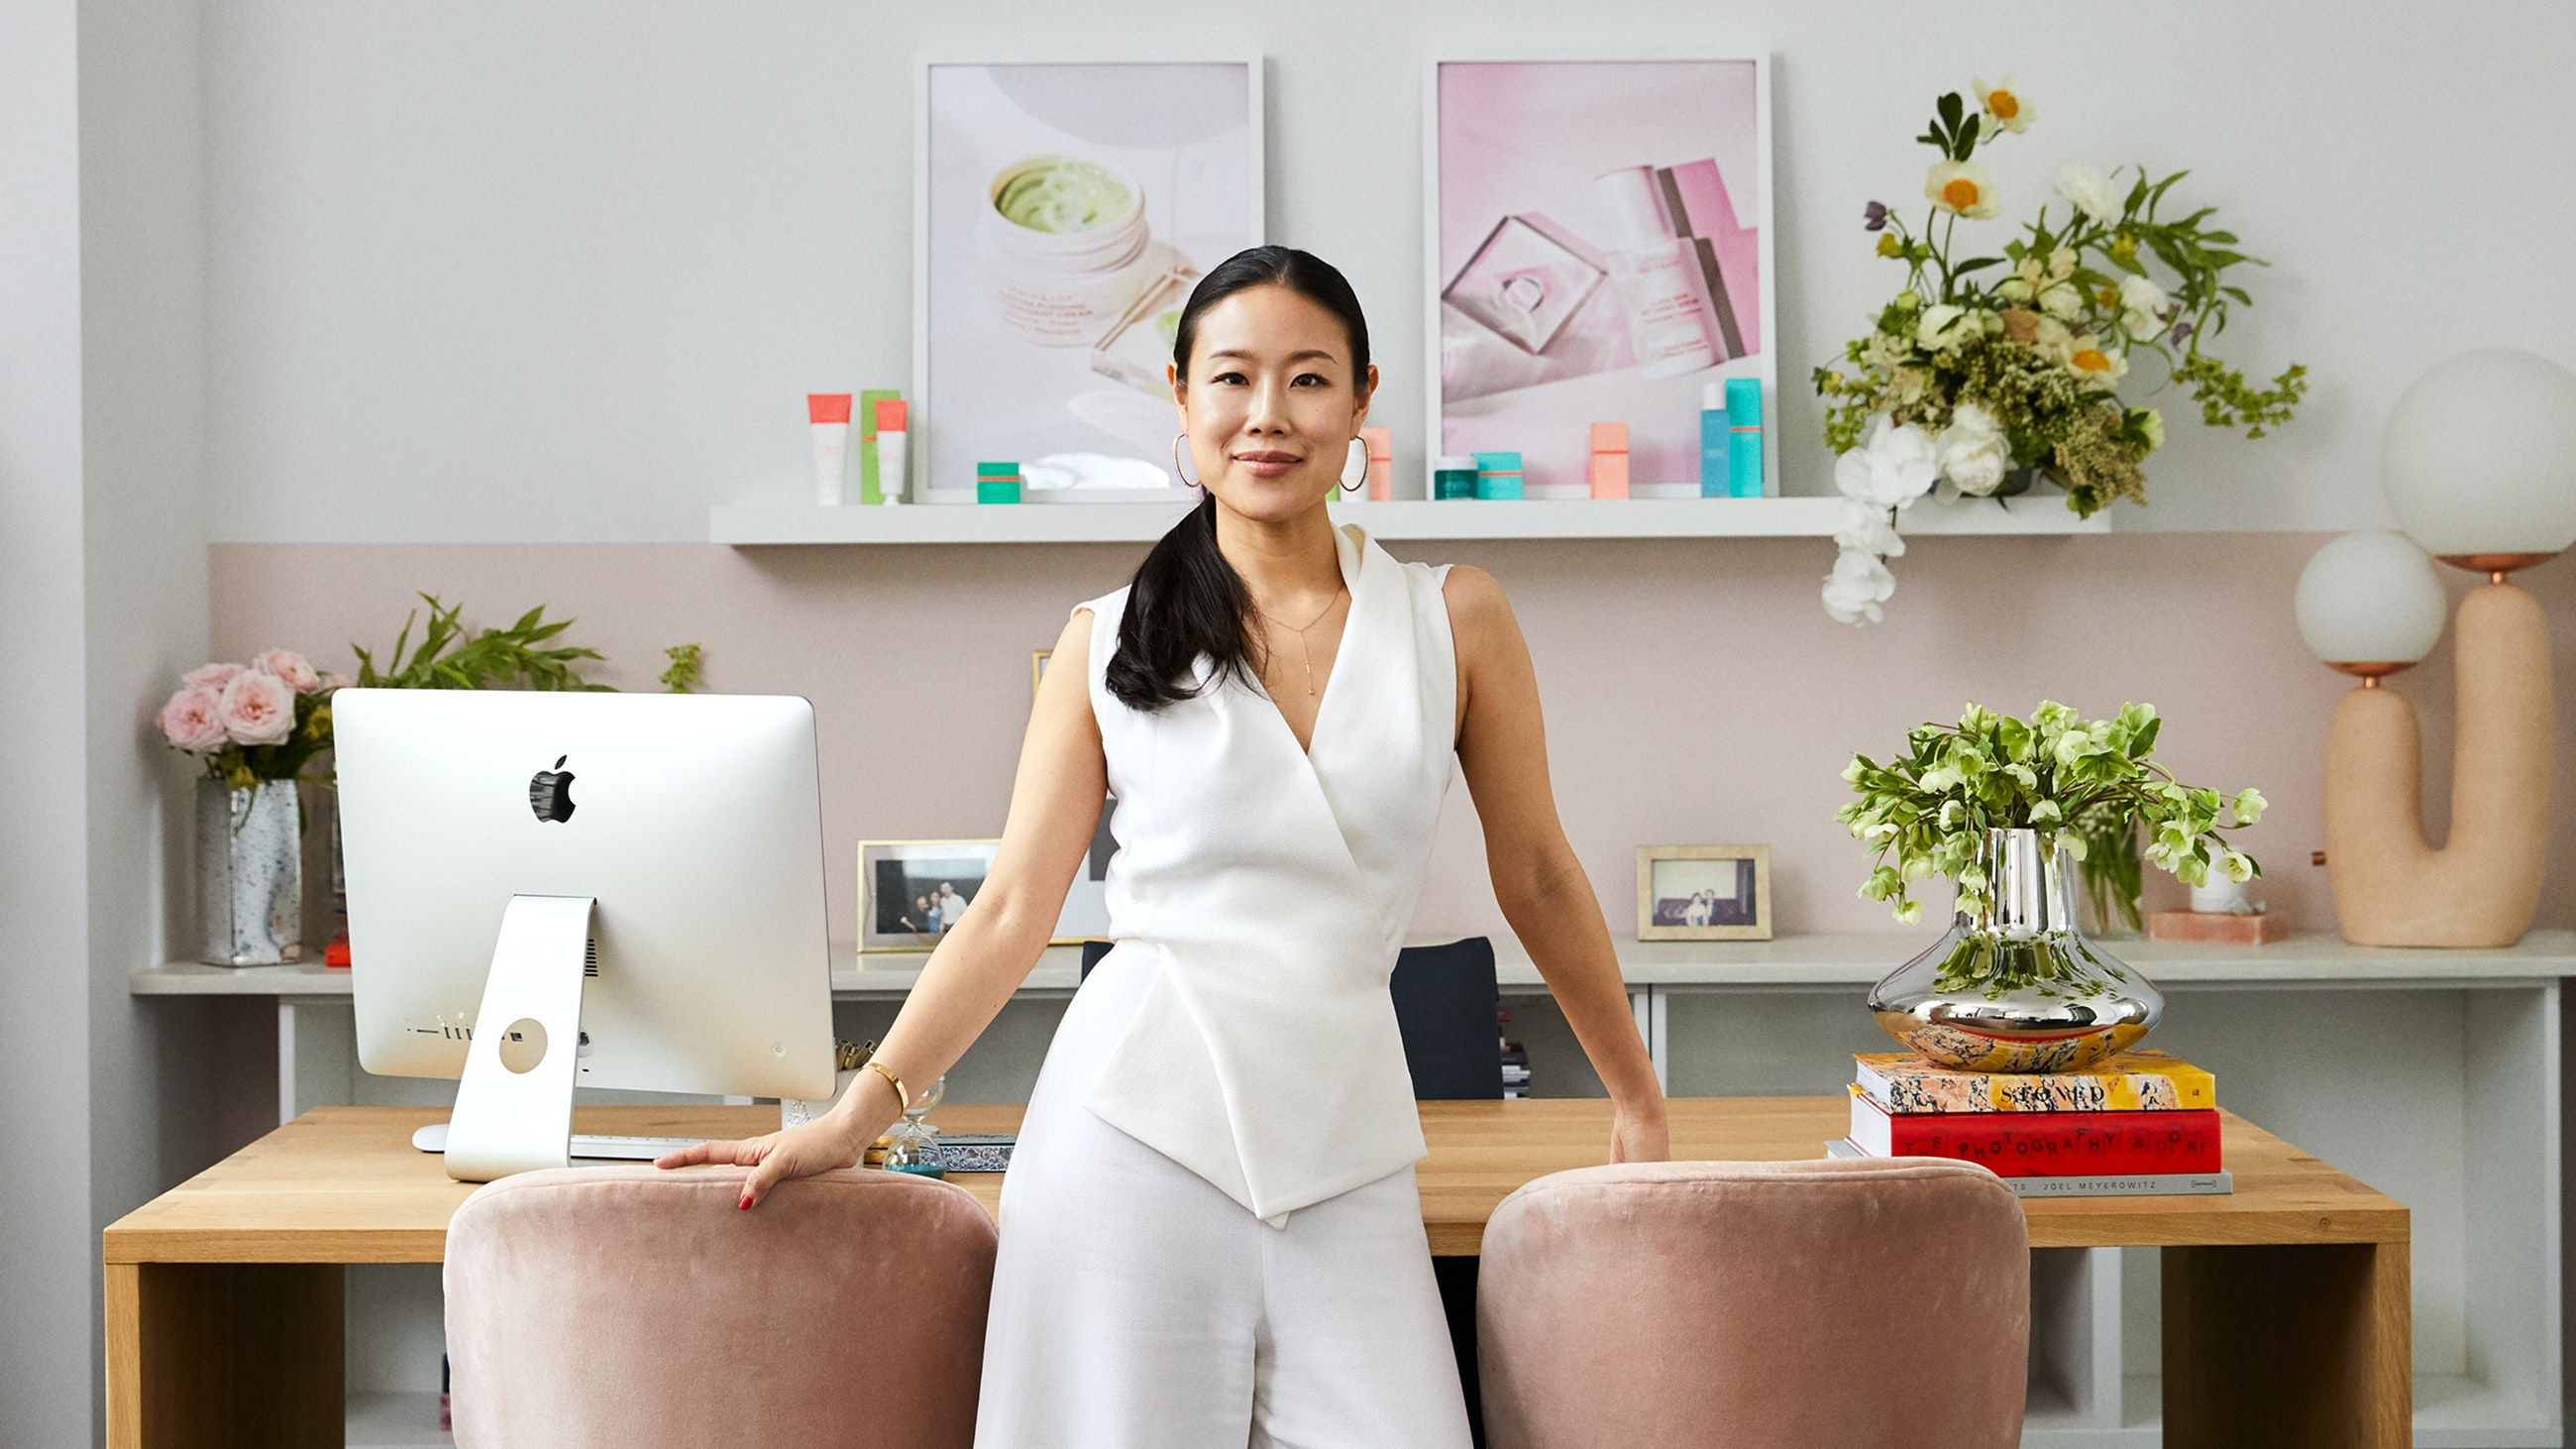 Peach & Lily Founder Alicia Yoon on Rigorous Skincare Routines, Sardines, and Anxiety